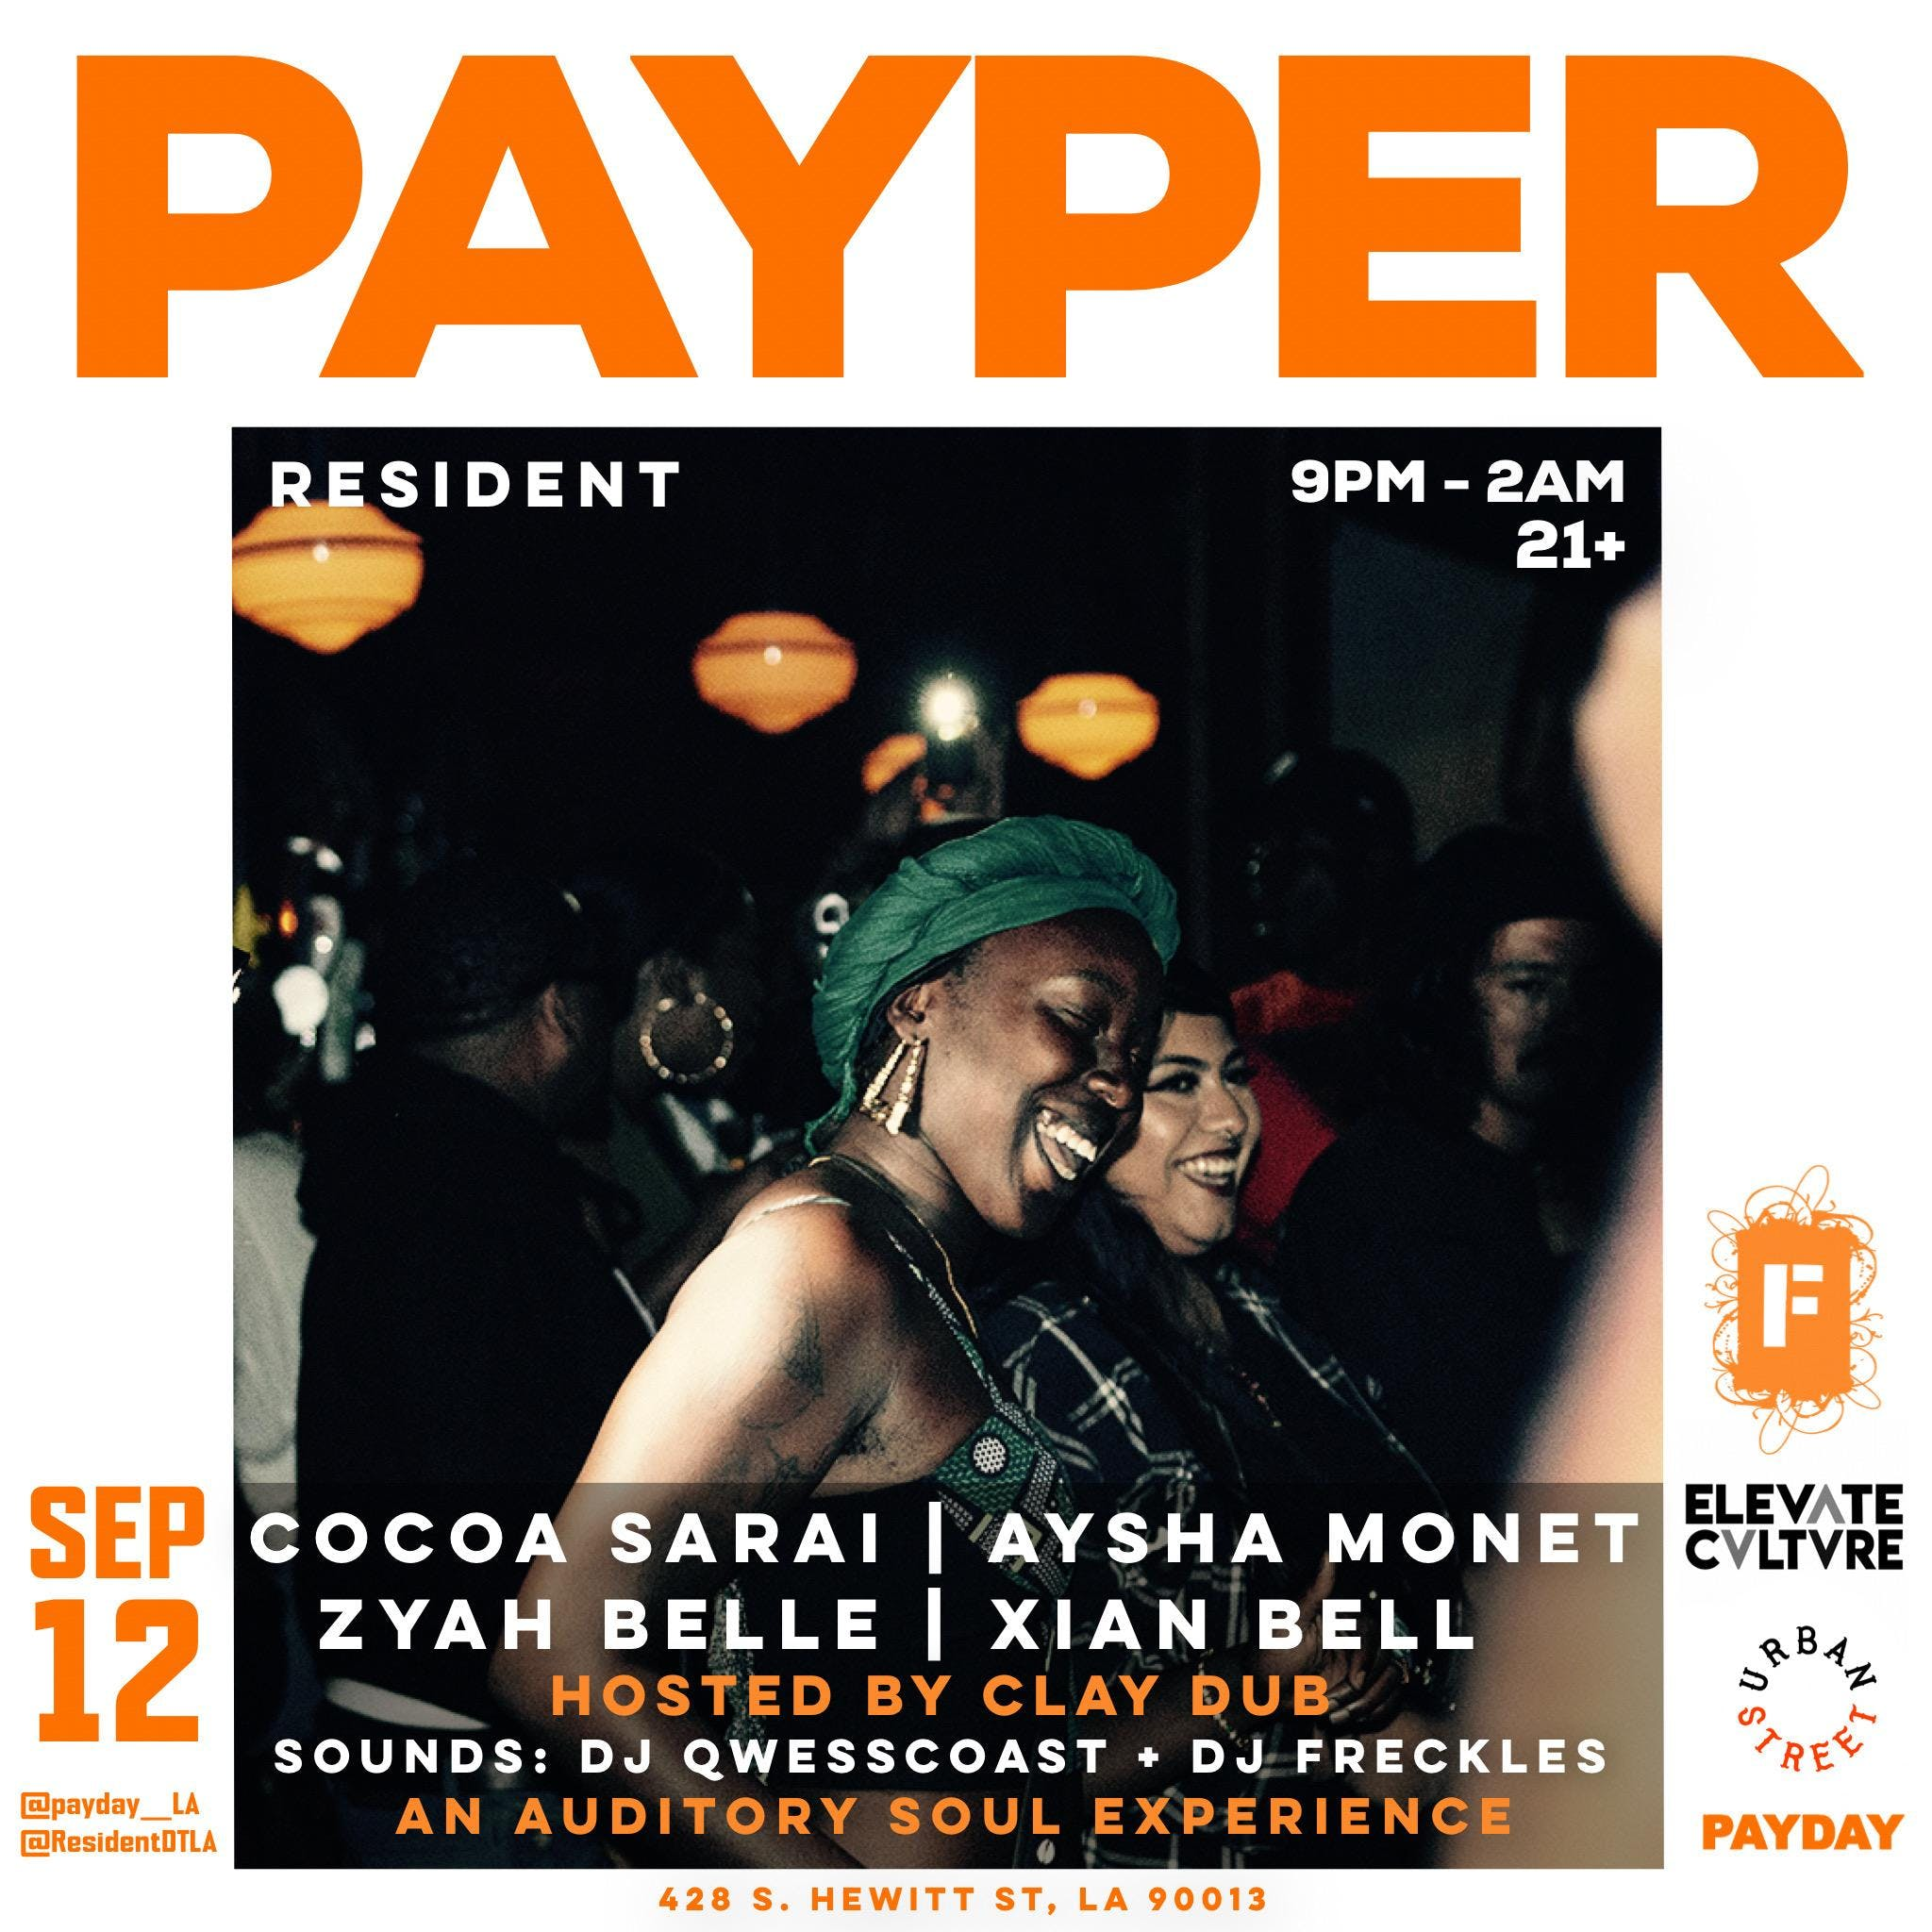 Elevate Culture & PayDay LA presents:  PAYPER